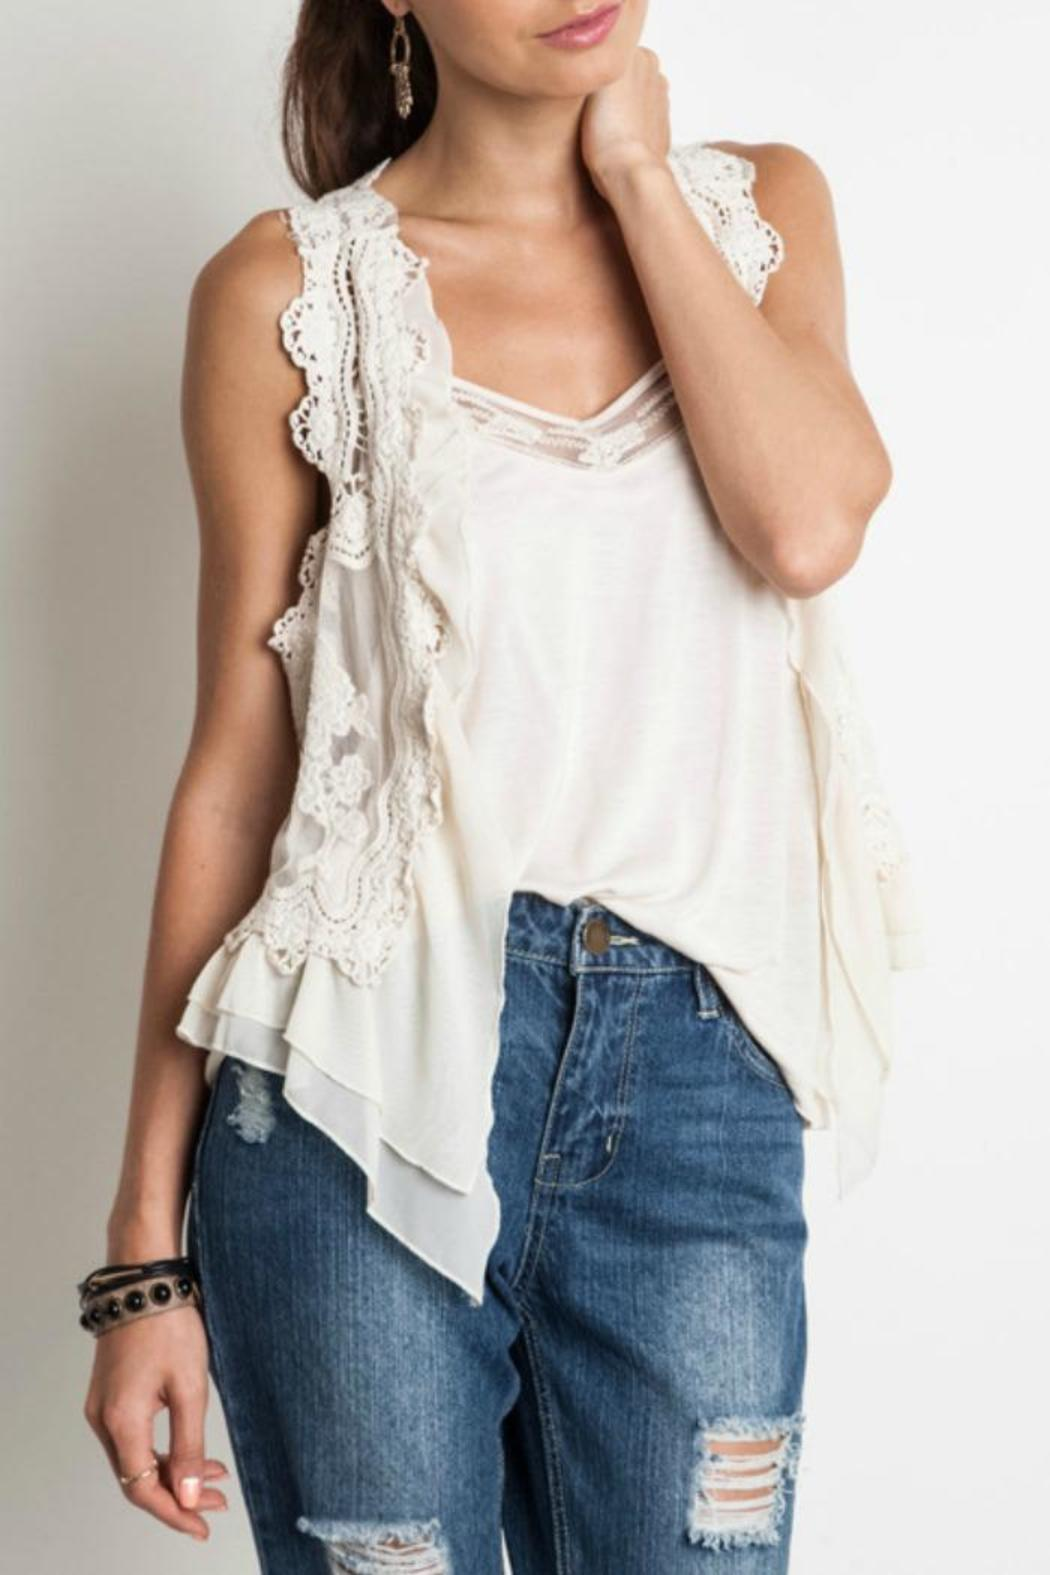 e0239c569eadf Umgee USA Chic Lace Vest from Franklin by Adalees — Shoptiques